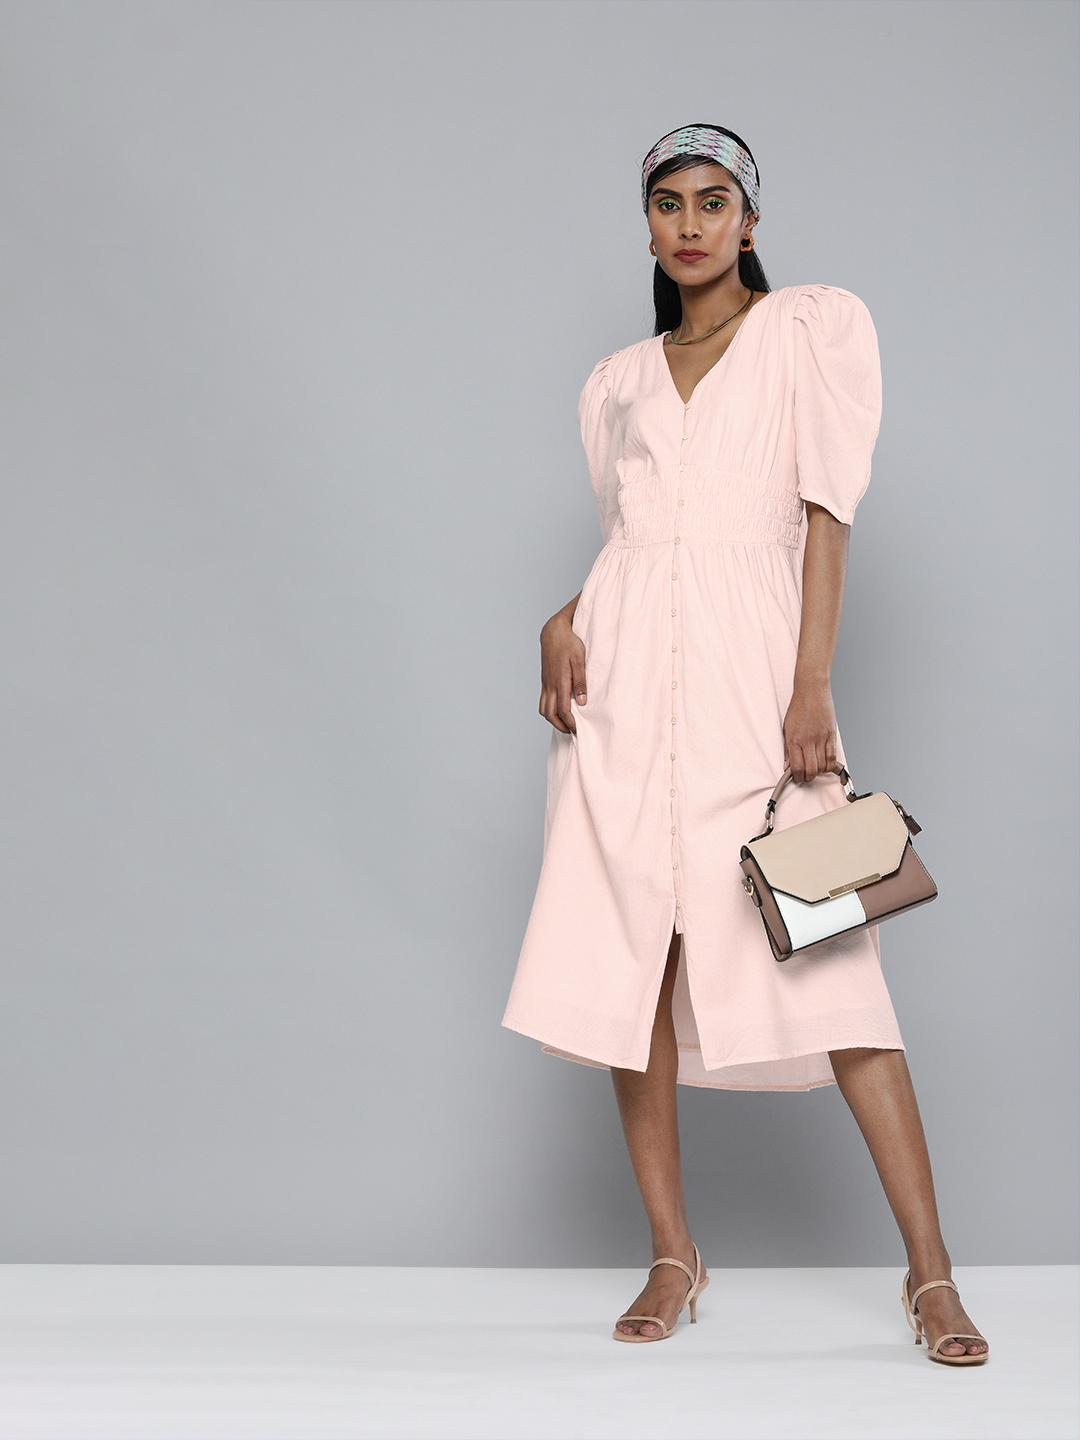 Puff Sleeves Pink Front buttoned Dress